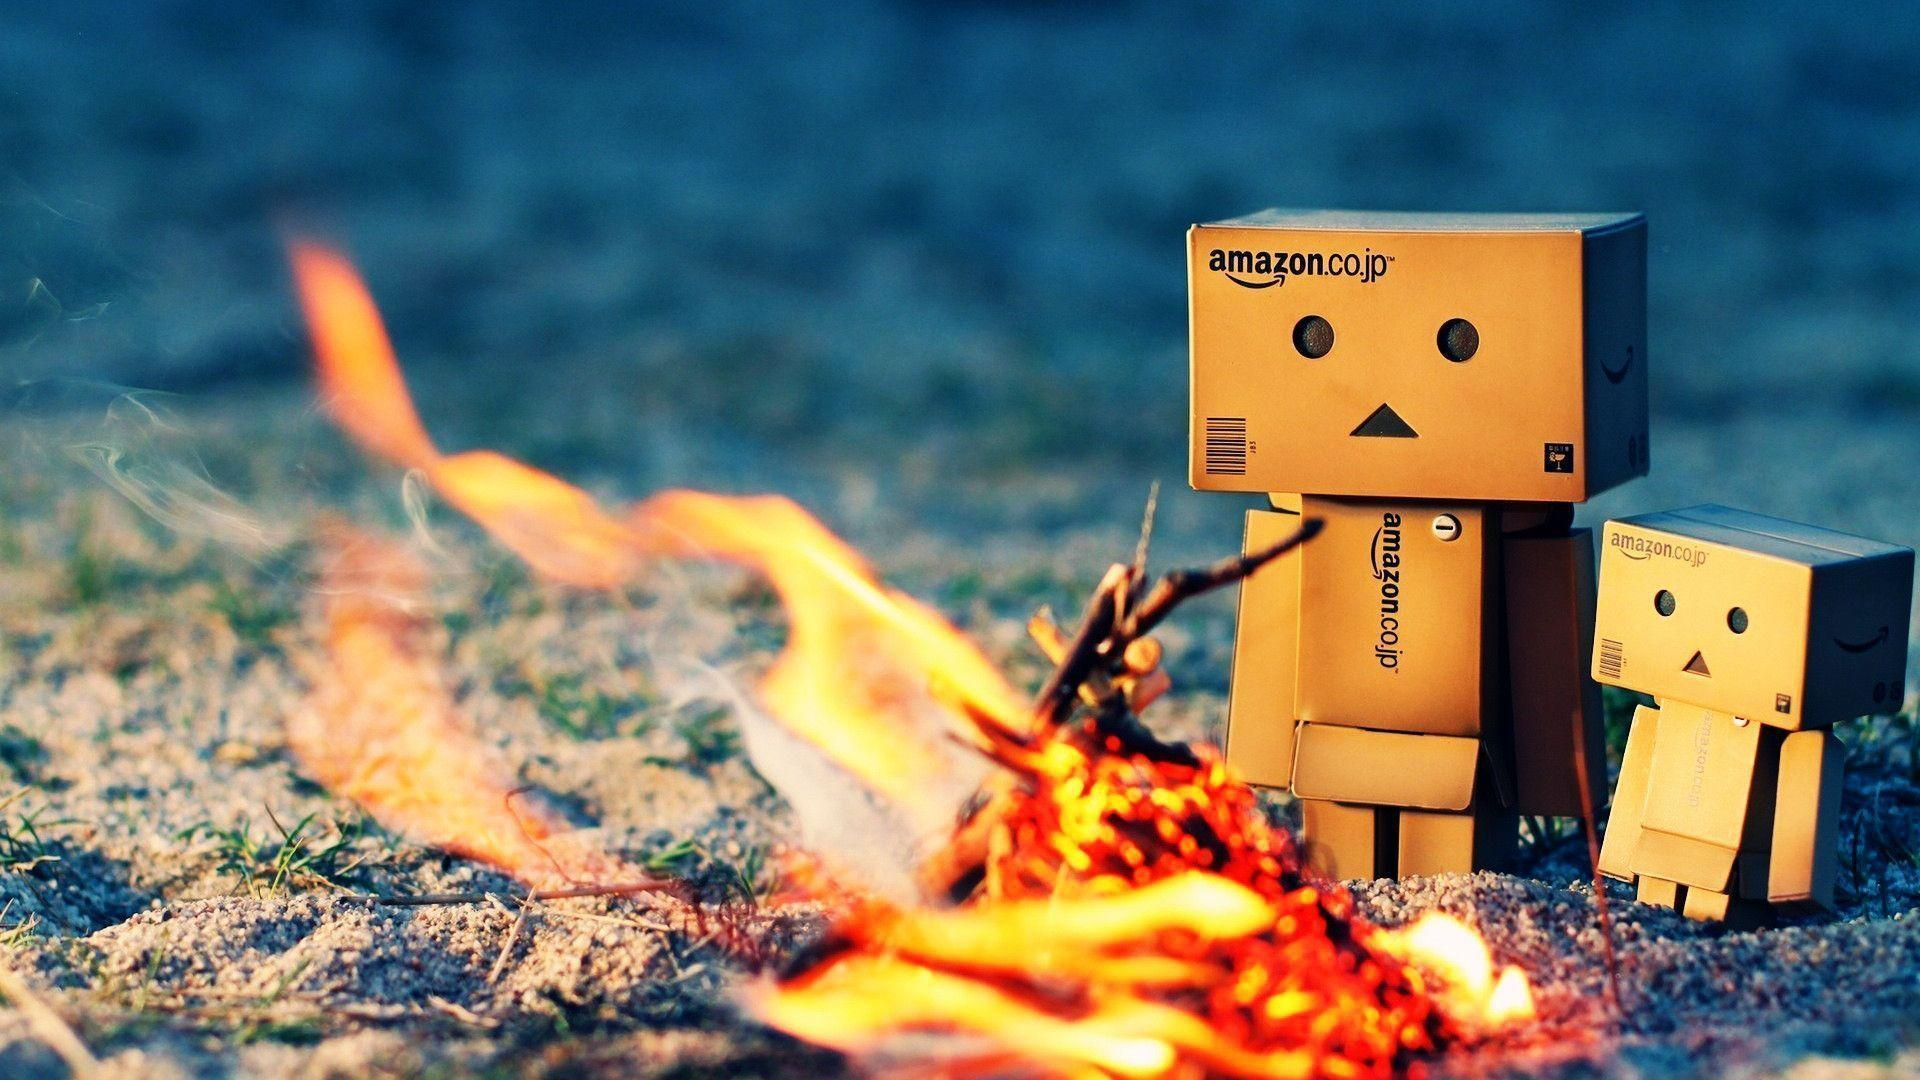 Danbo wallpapers wallpaper cave - Amazon wallpaper hd ...